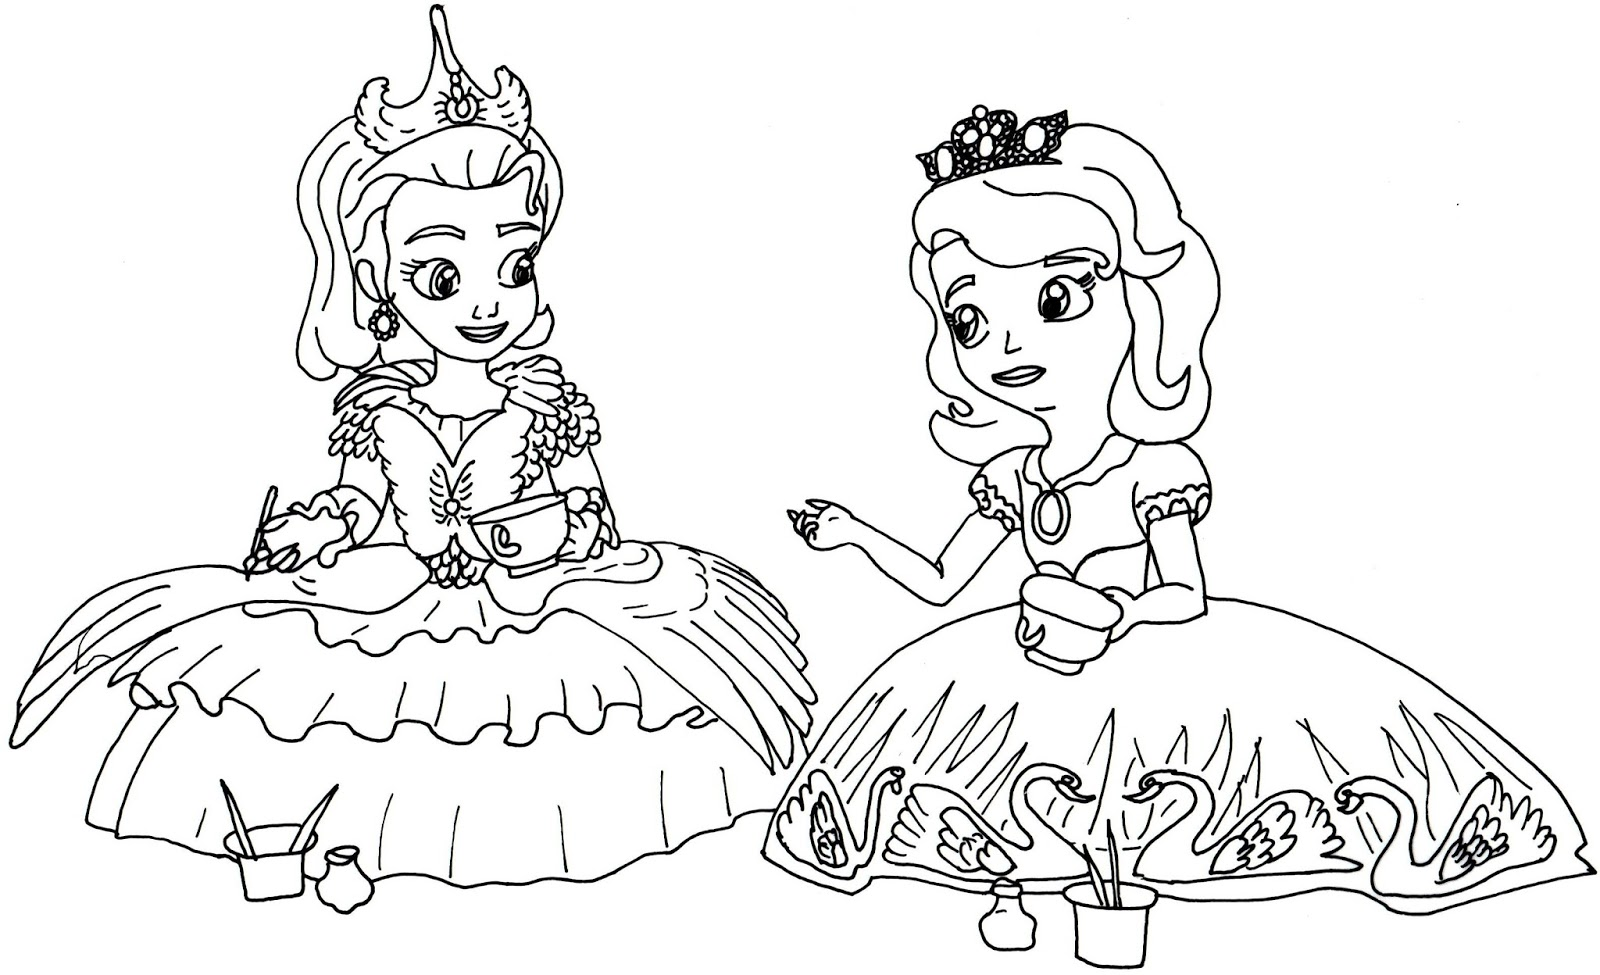 Sofia the First Coloring Pages for Kids  KidiPage